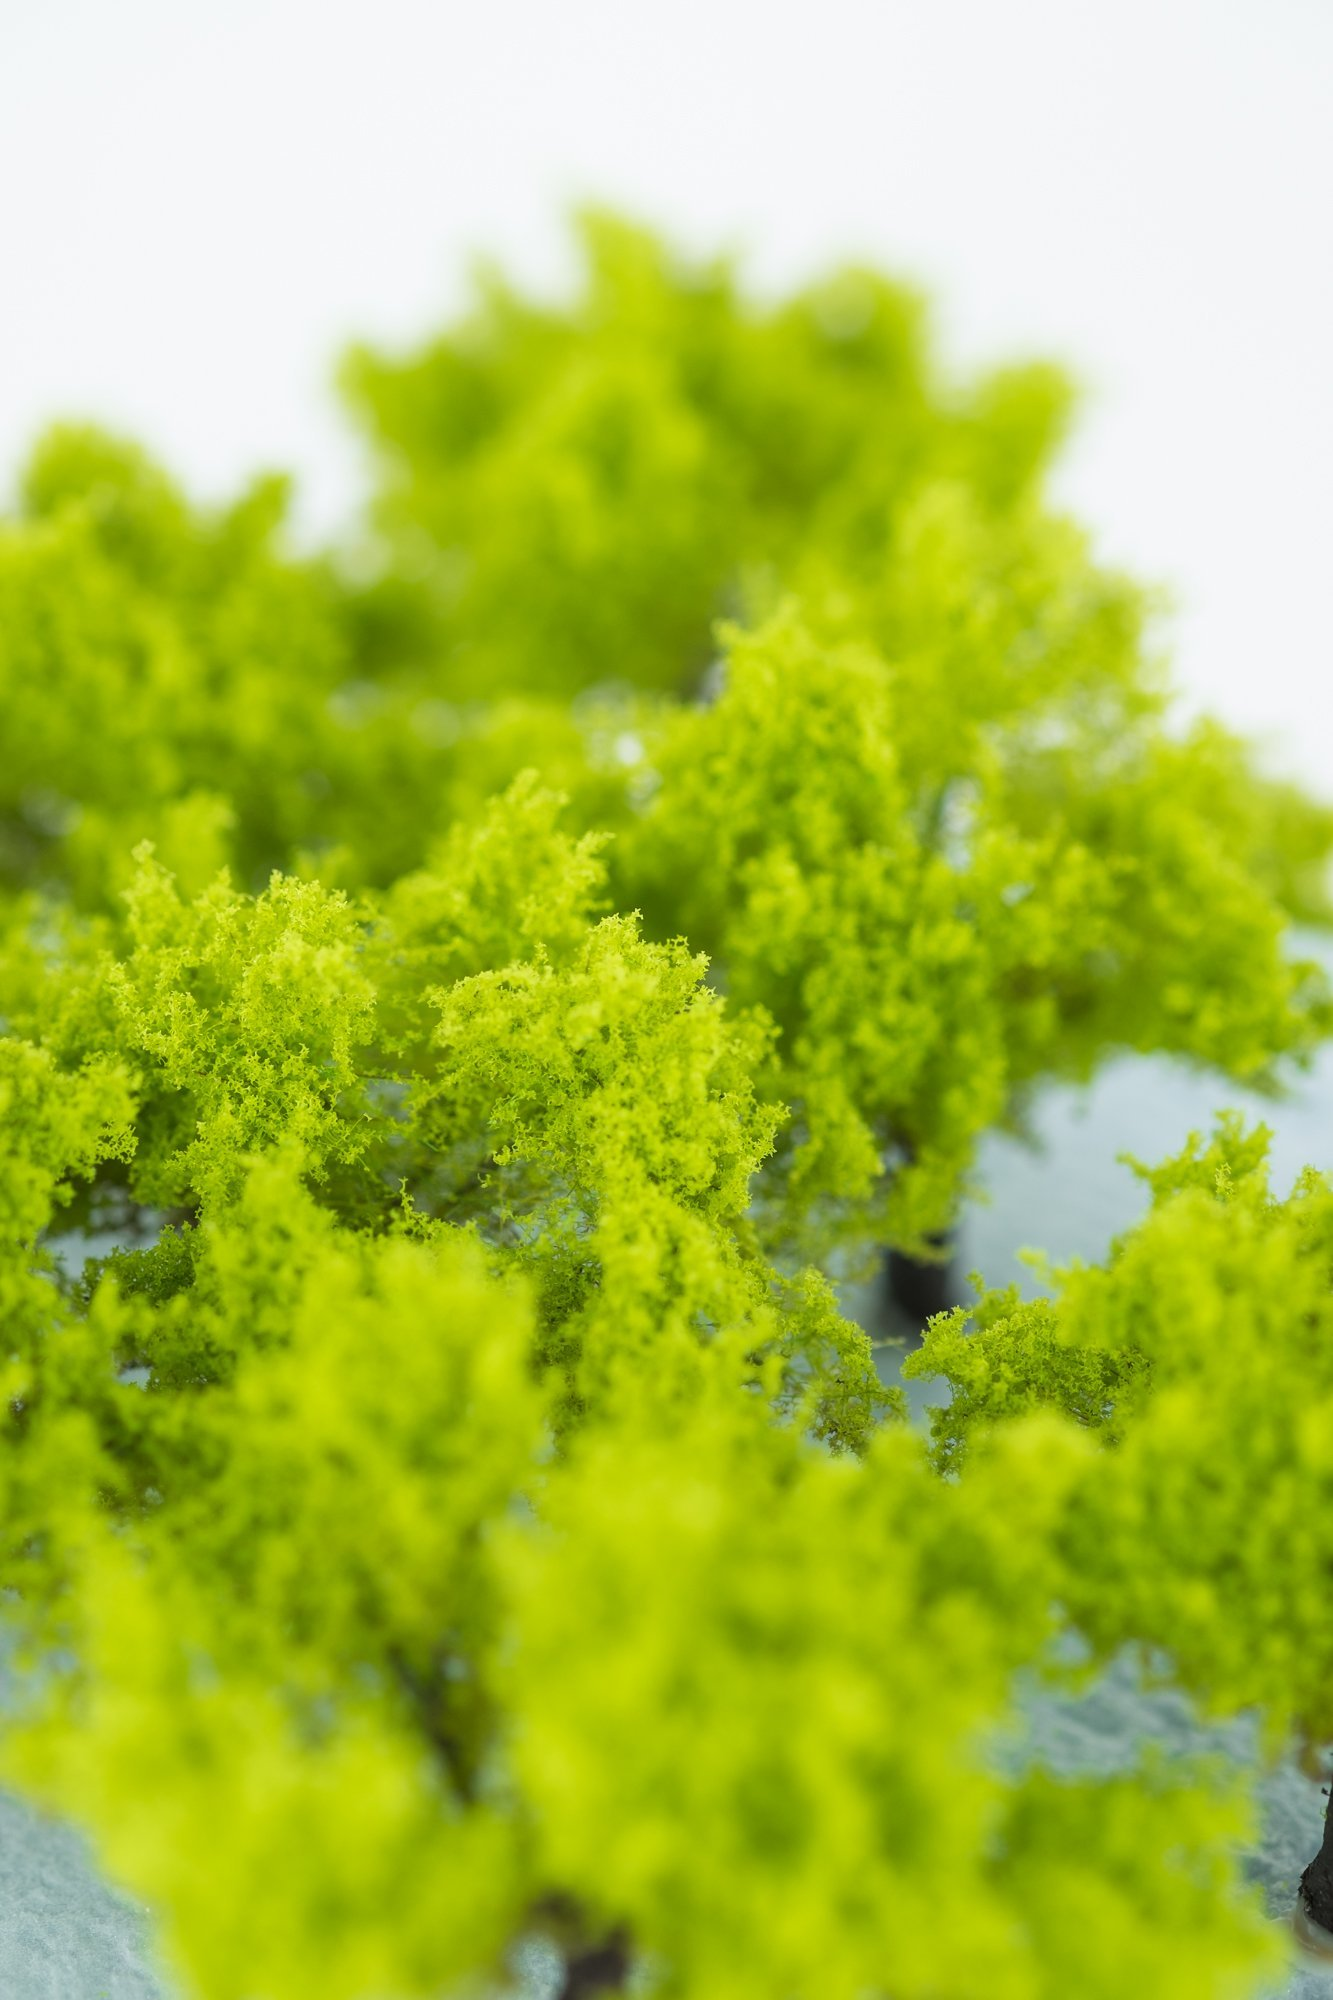 Closeup of foliage on regular light green model bushes. Made from high quality model supplies by Primo Models.